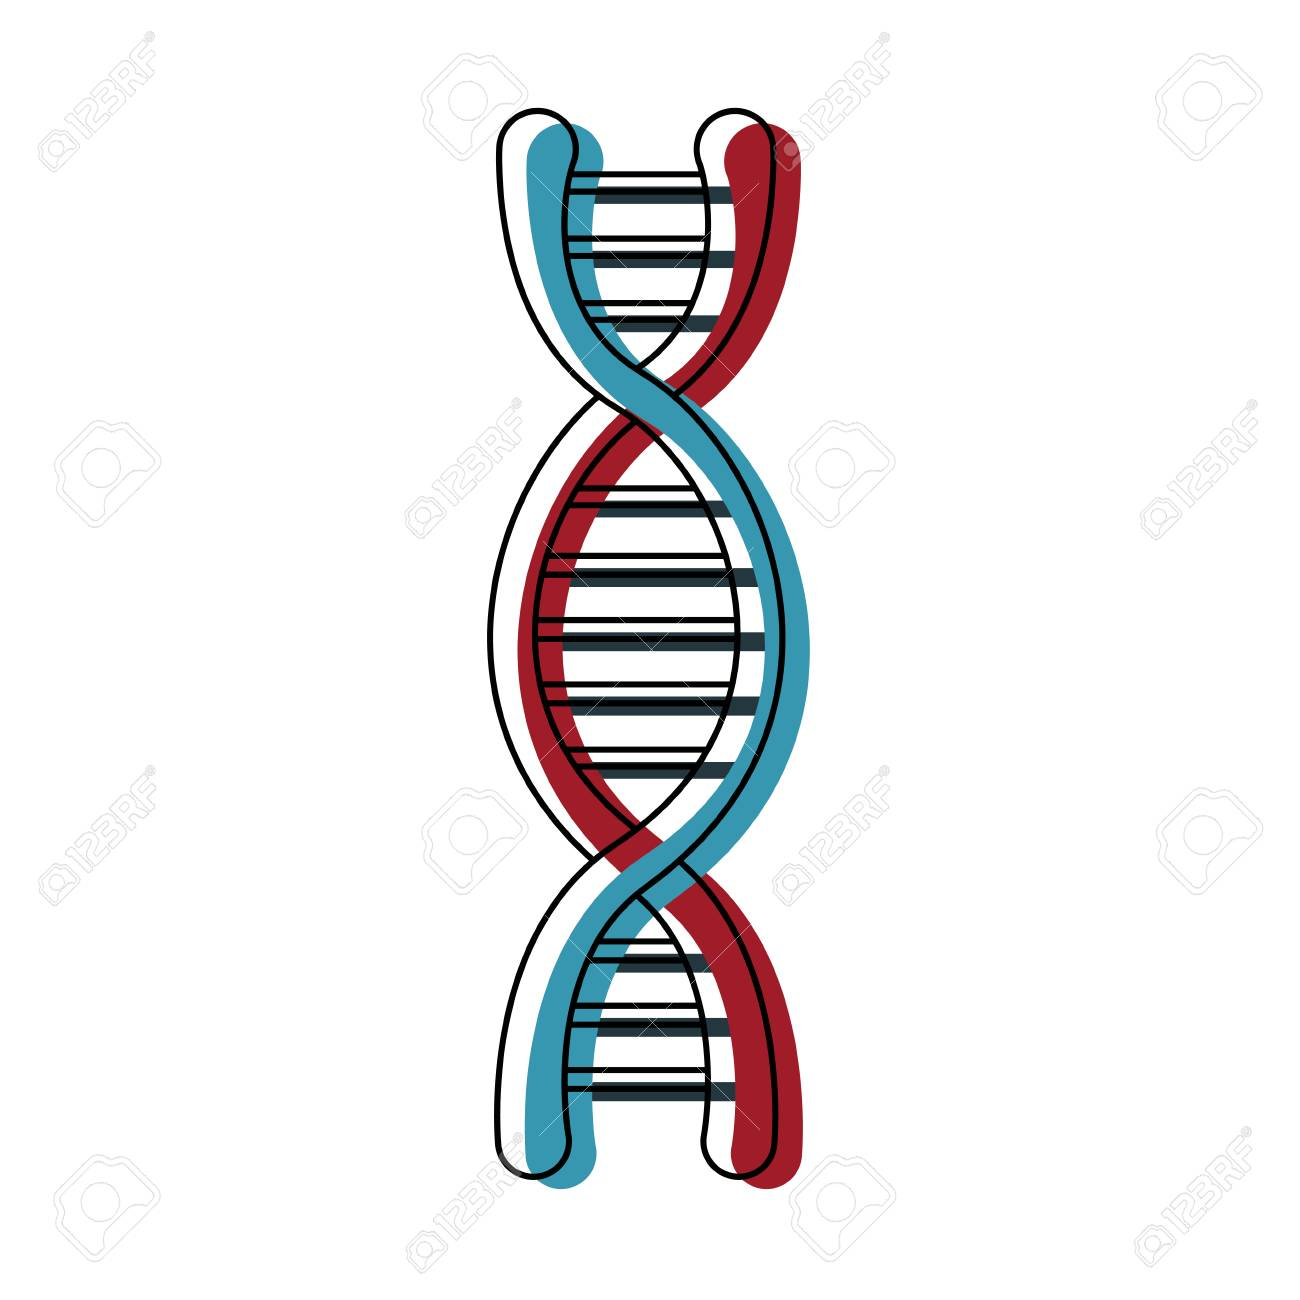 dna molecule structure science genetic structure vector illustration.